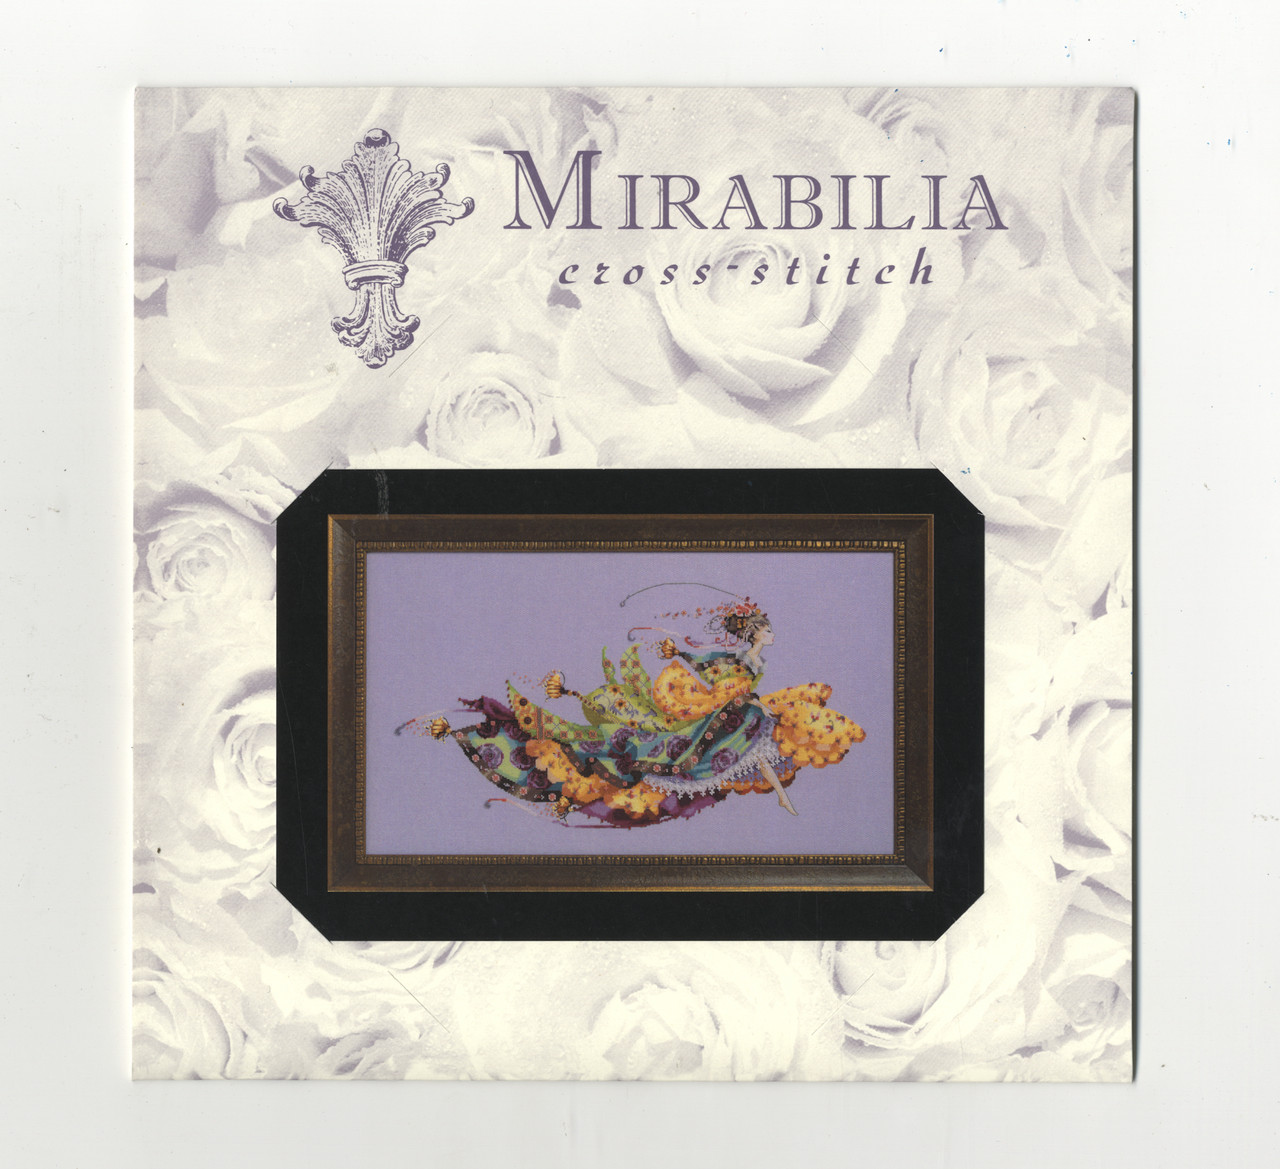 Mirabilia - Princess Elliana